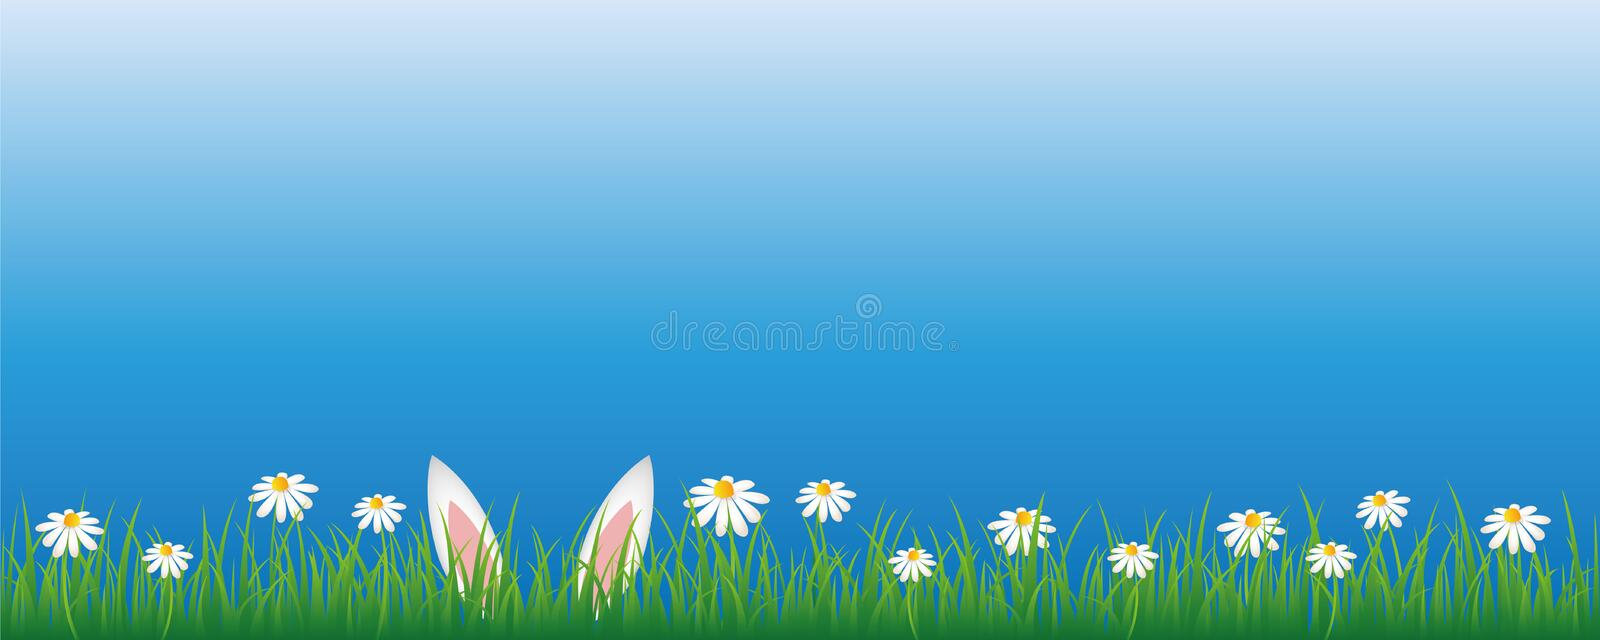 Bunny ears in green meadow with white daisy flowers banner with copy space royalty free illustration